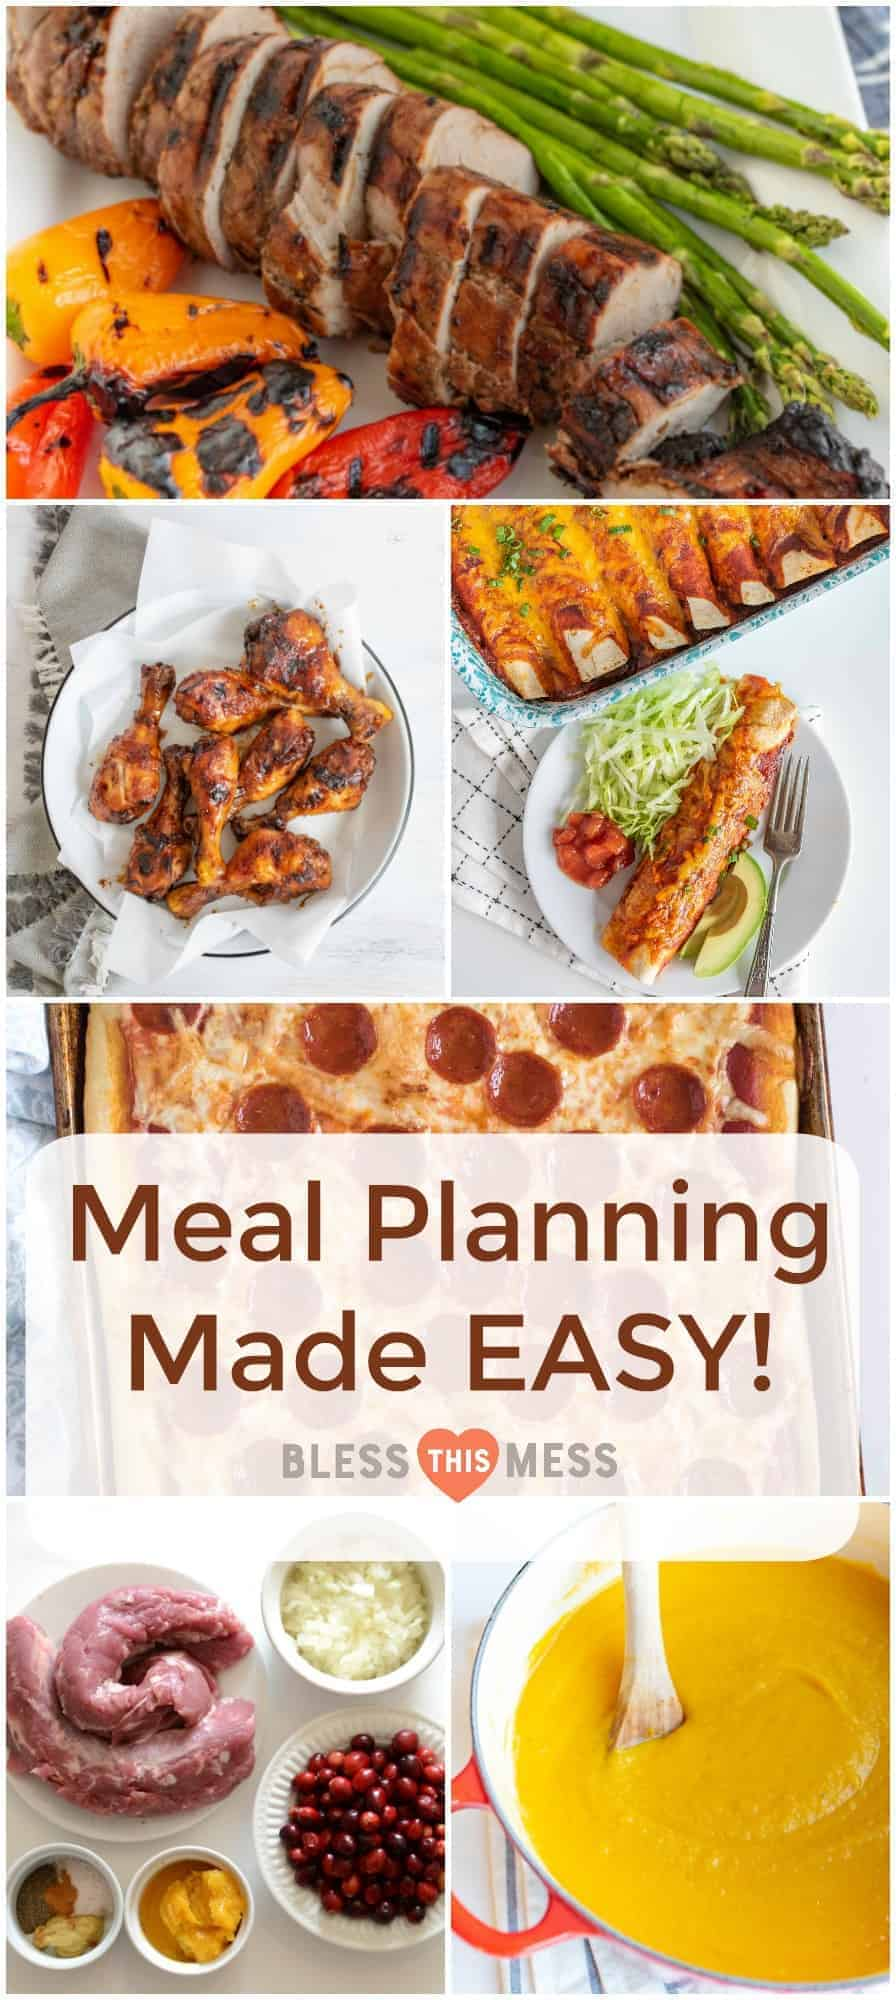 Meal planning doesn't require blood, sweat, and tears -- with my guide and free printable calendars, you can experience my busy-proof, tried-and-true 3 steps to EASY meal planningASAP!